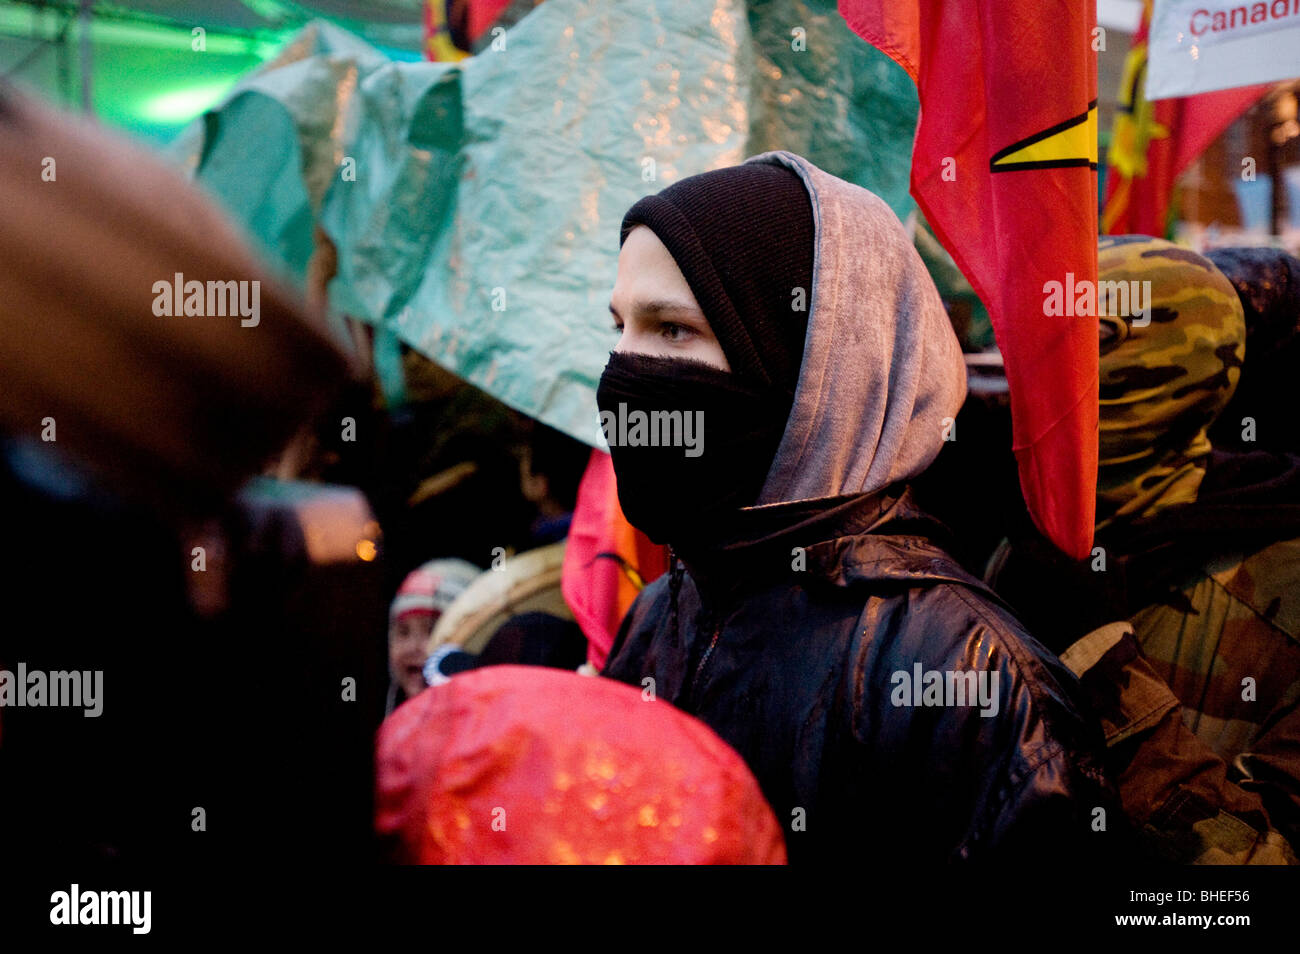 Masked anti Olympic protester on the opening day of the 2010 Vancouver Olympic games. February 12th, 2010. - Stock Image